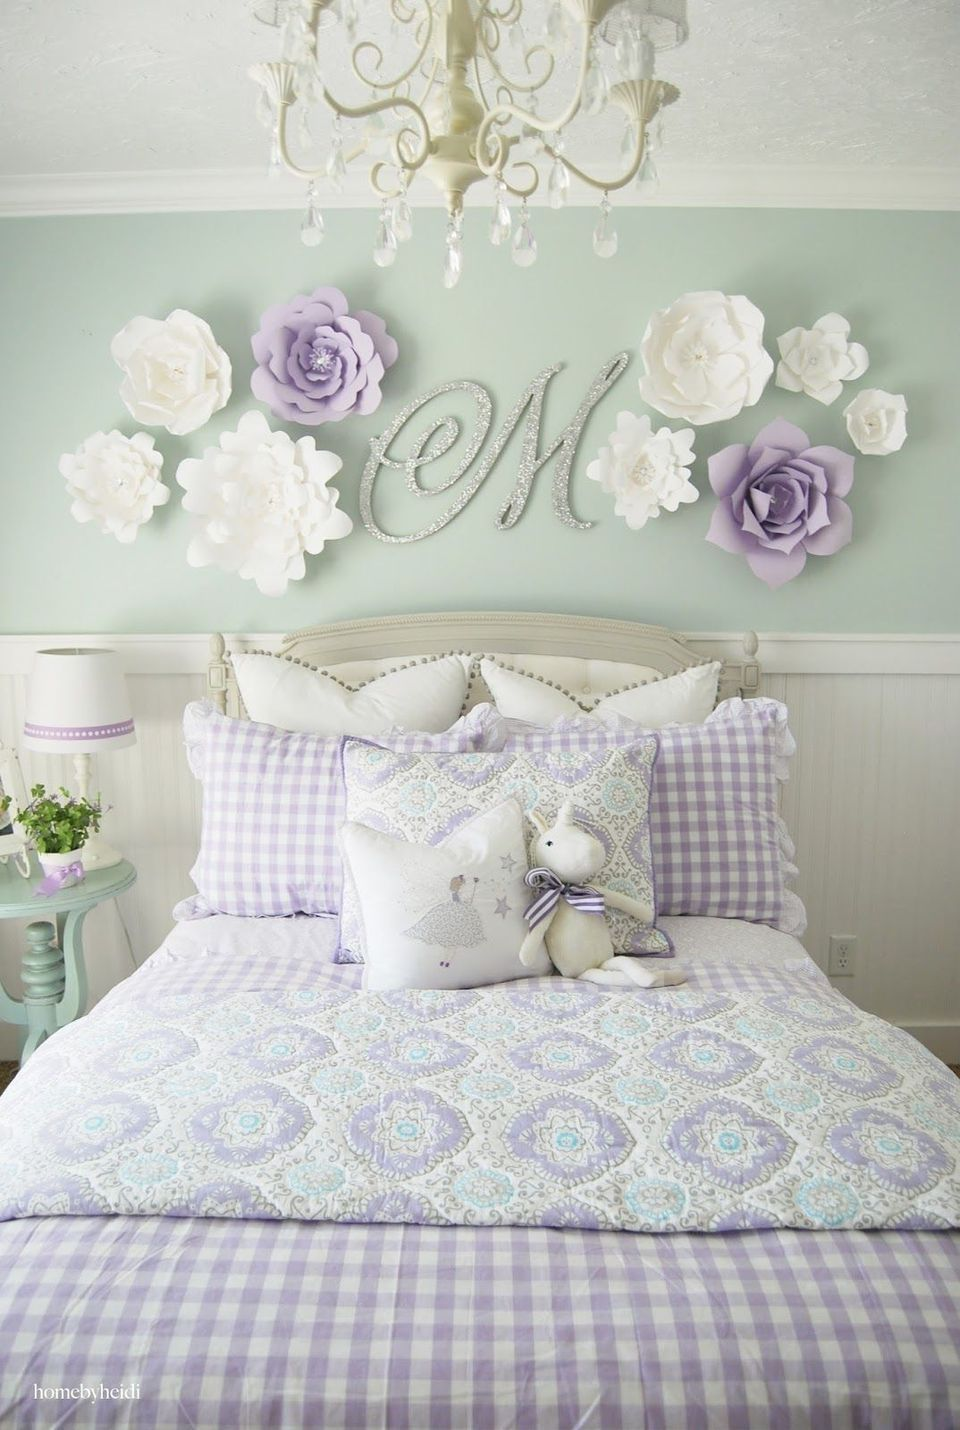 24 Wall Decor Ideas for Girls\' Rooms | London\'s room | Girls bedroom ...